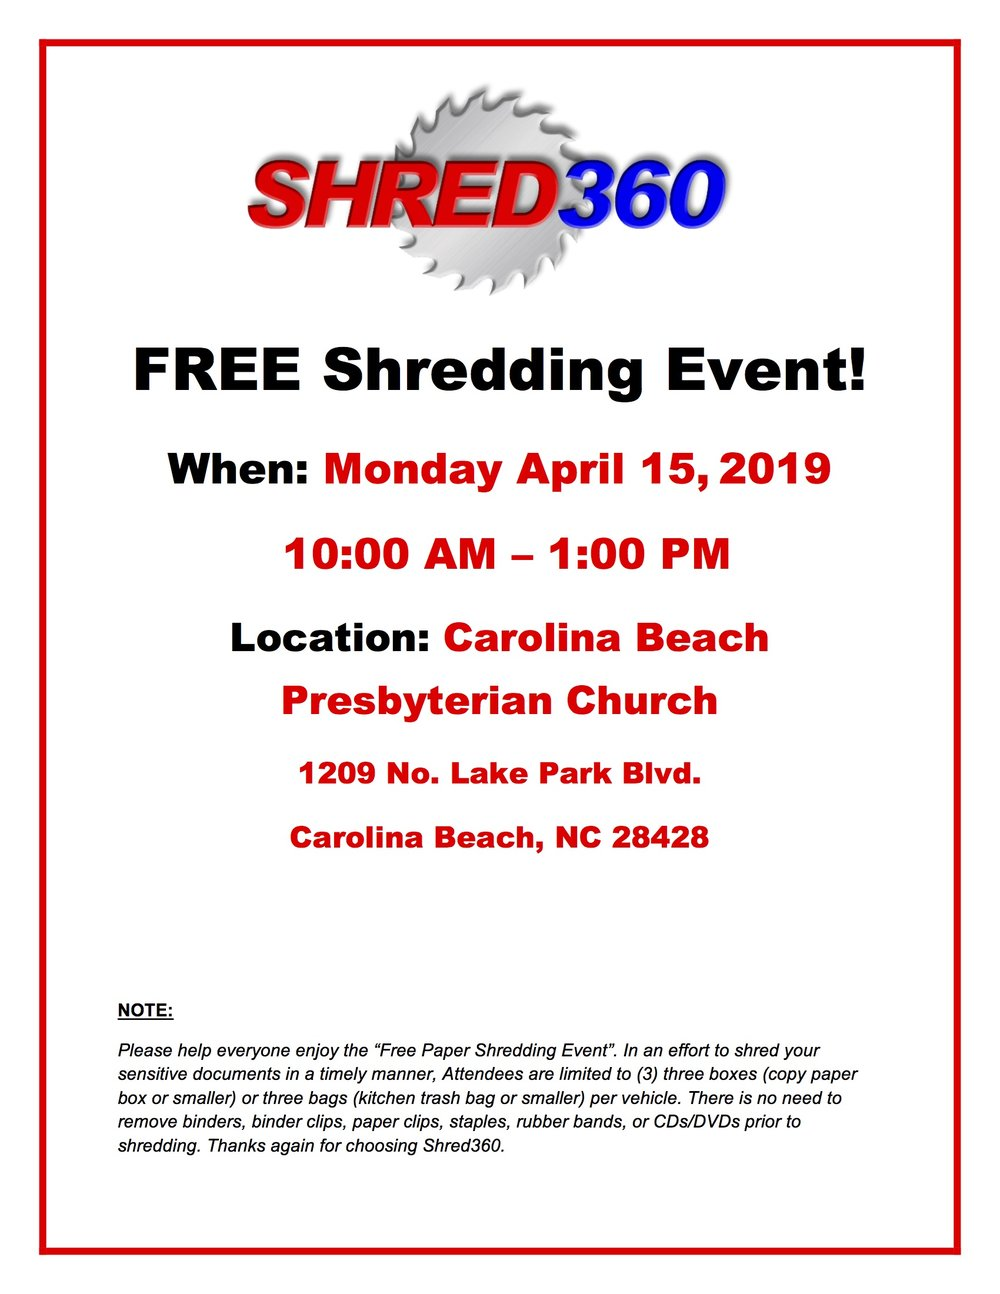 Shredding Event Flyer 2019.jpg